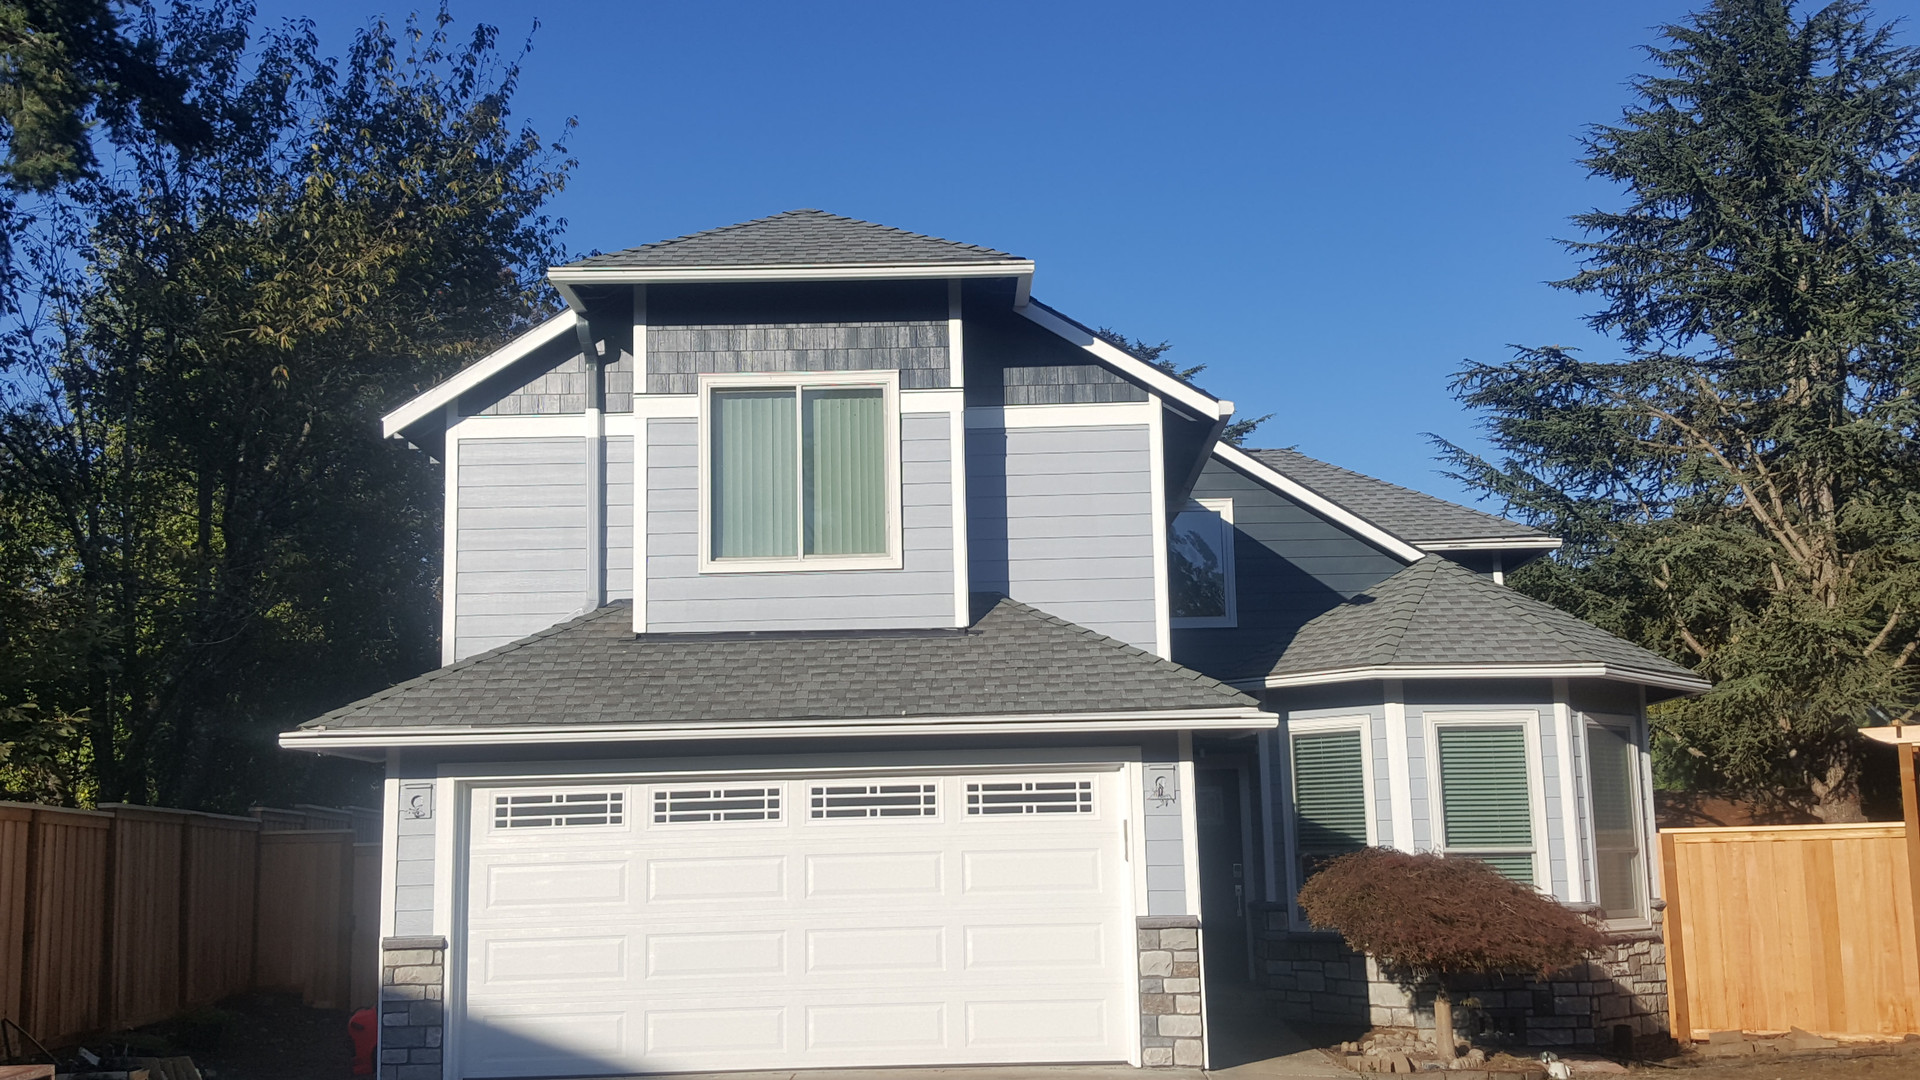 West Linn Home after reside with James Hardie siding, Trim, Shake, Belly Bands